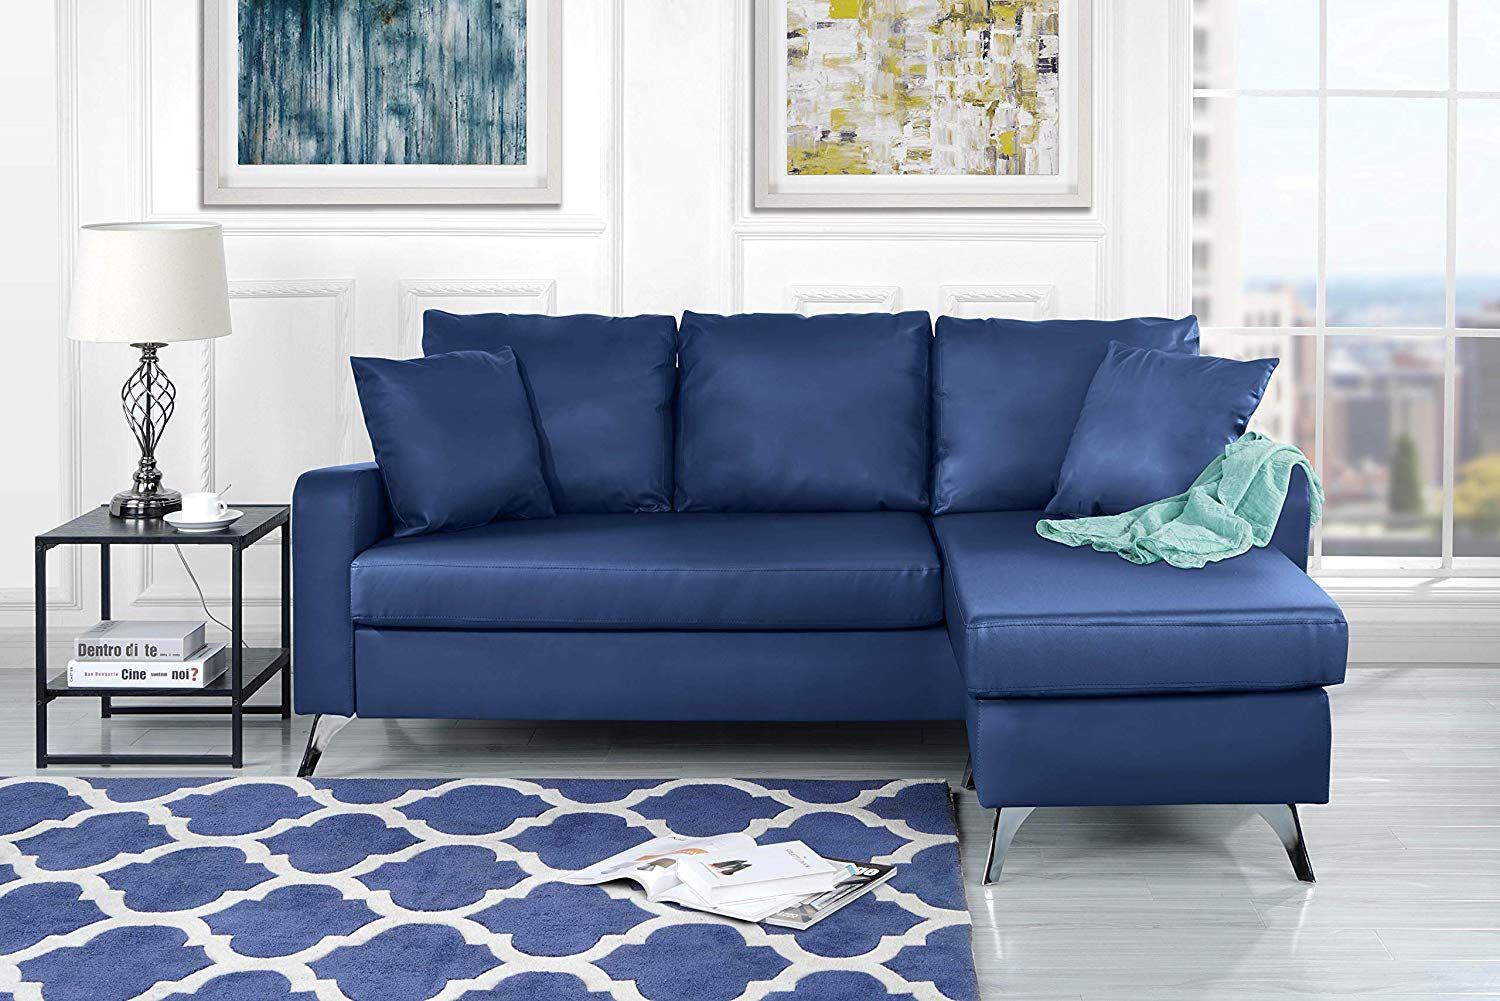 Divano Roma Furniture Bonded Leather Sectional Sofa Small E Configurable Couch Blue Kitchen Dining